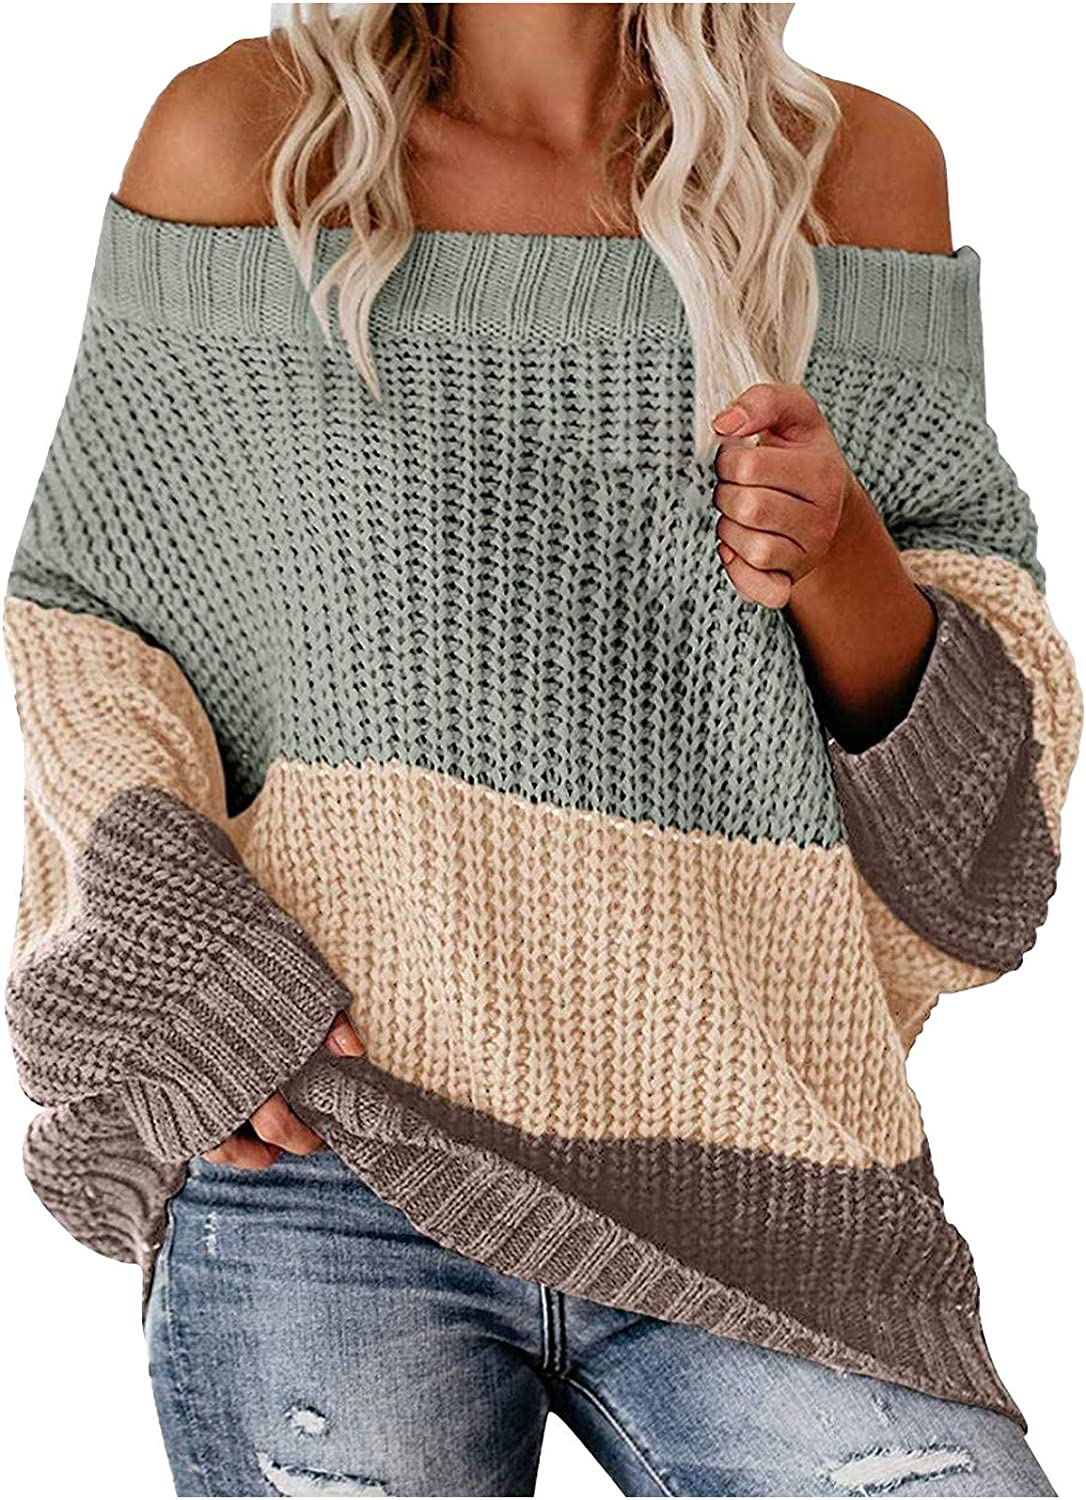 Women's Off Cold Shoulder Sweater Long Sleeve Shirt Color Block Plus Size Tops Fall Loose Knitting Pullover